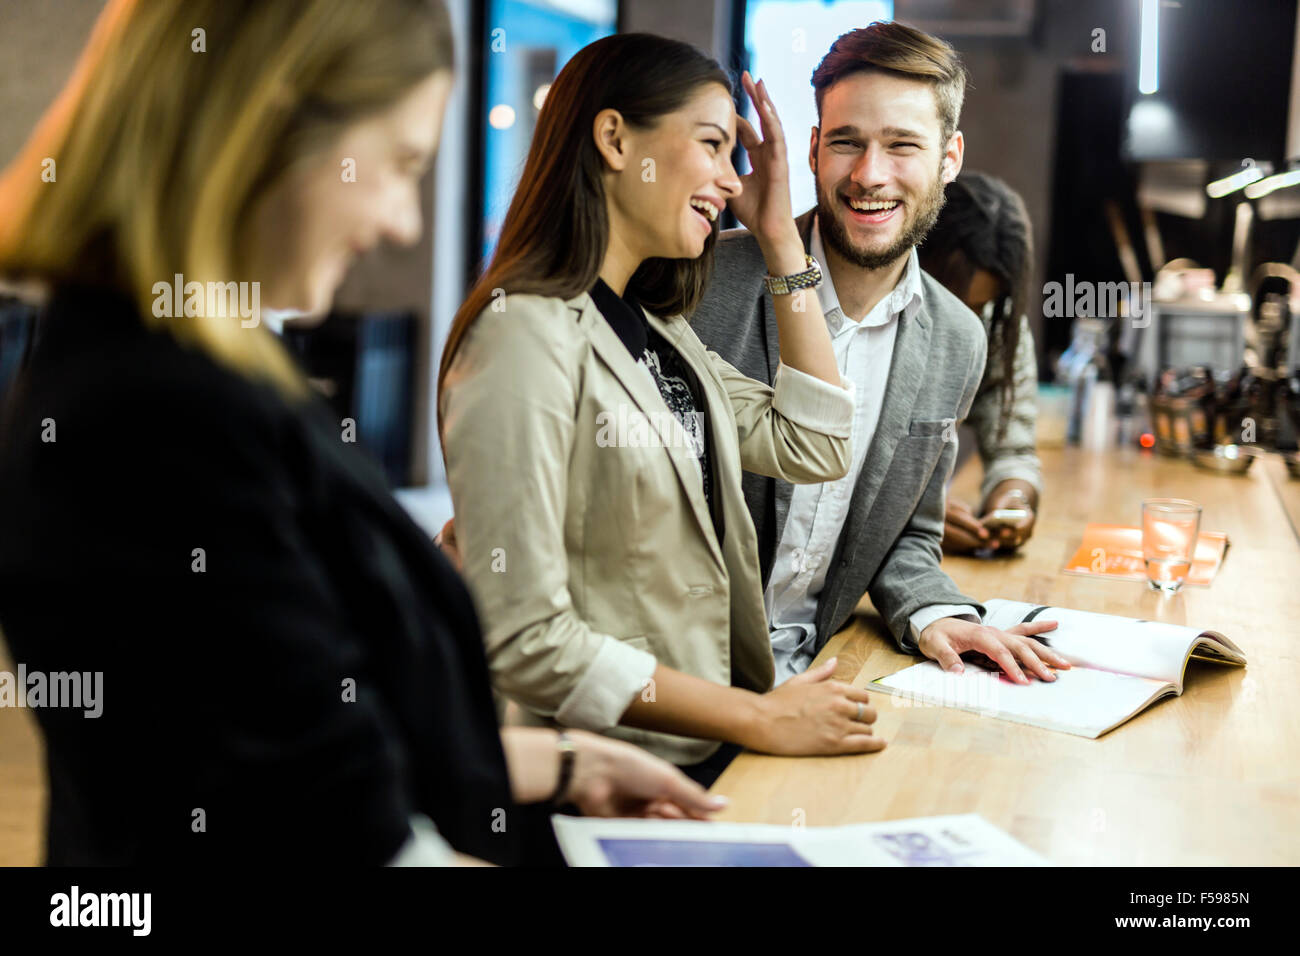 Friends at the counter of a bar after work having fun and smiling - Stock Image